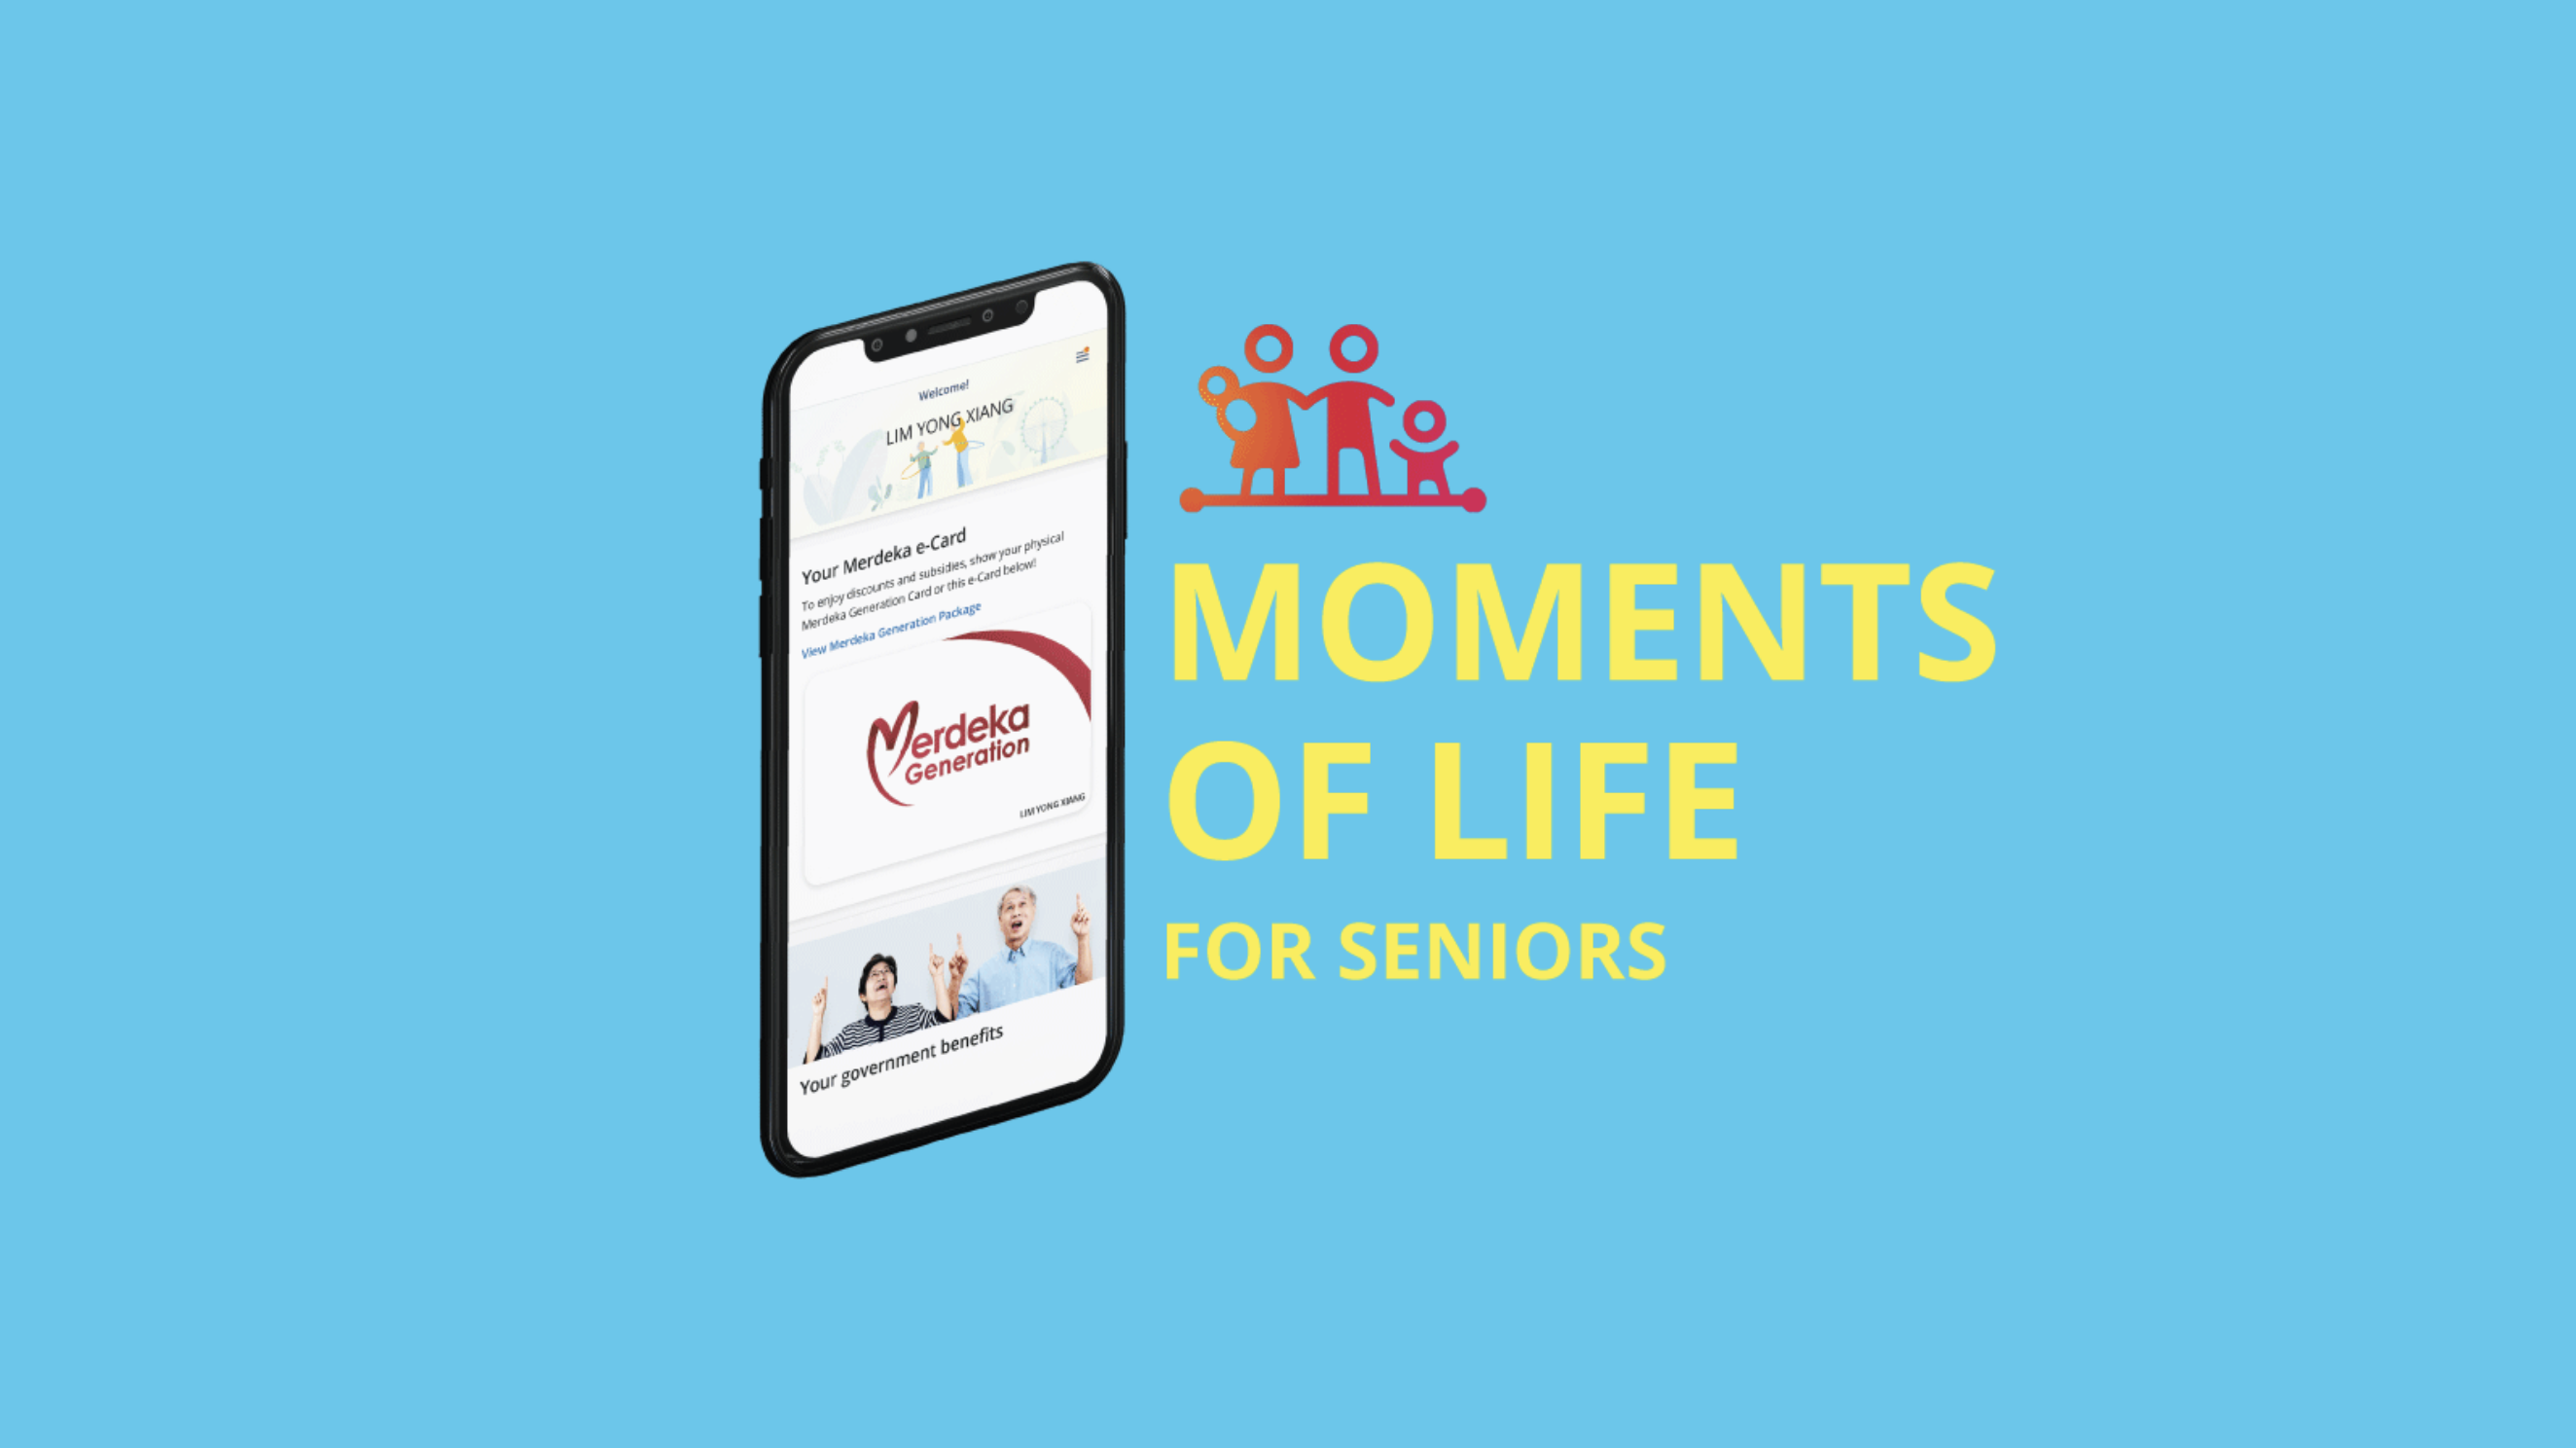 Moments of Life for Seniors